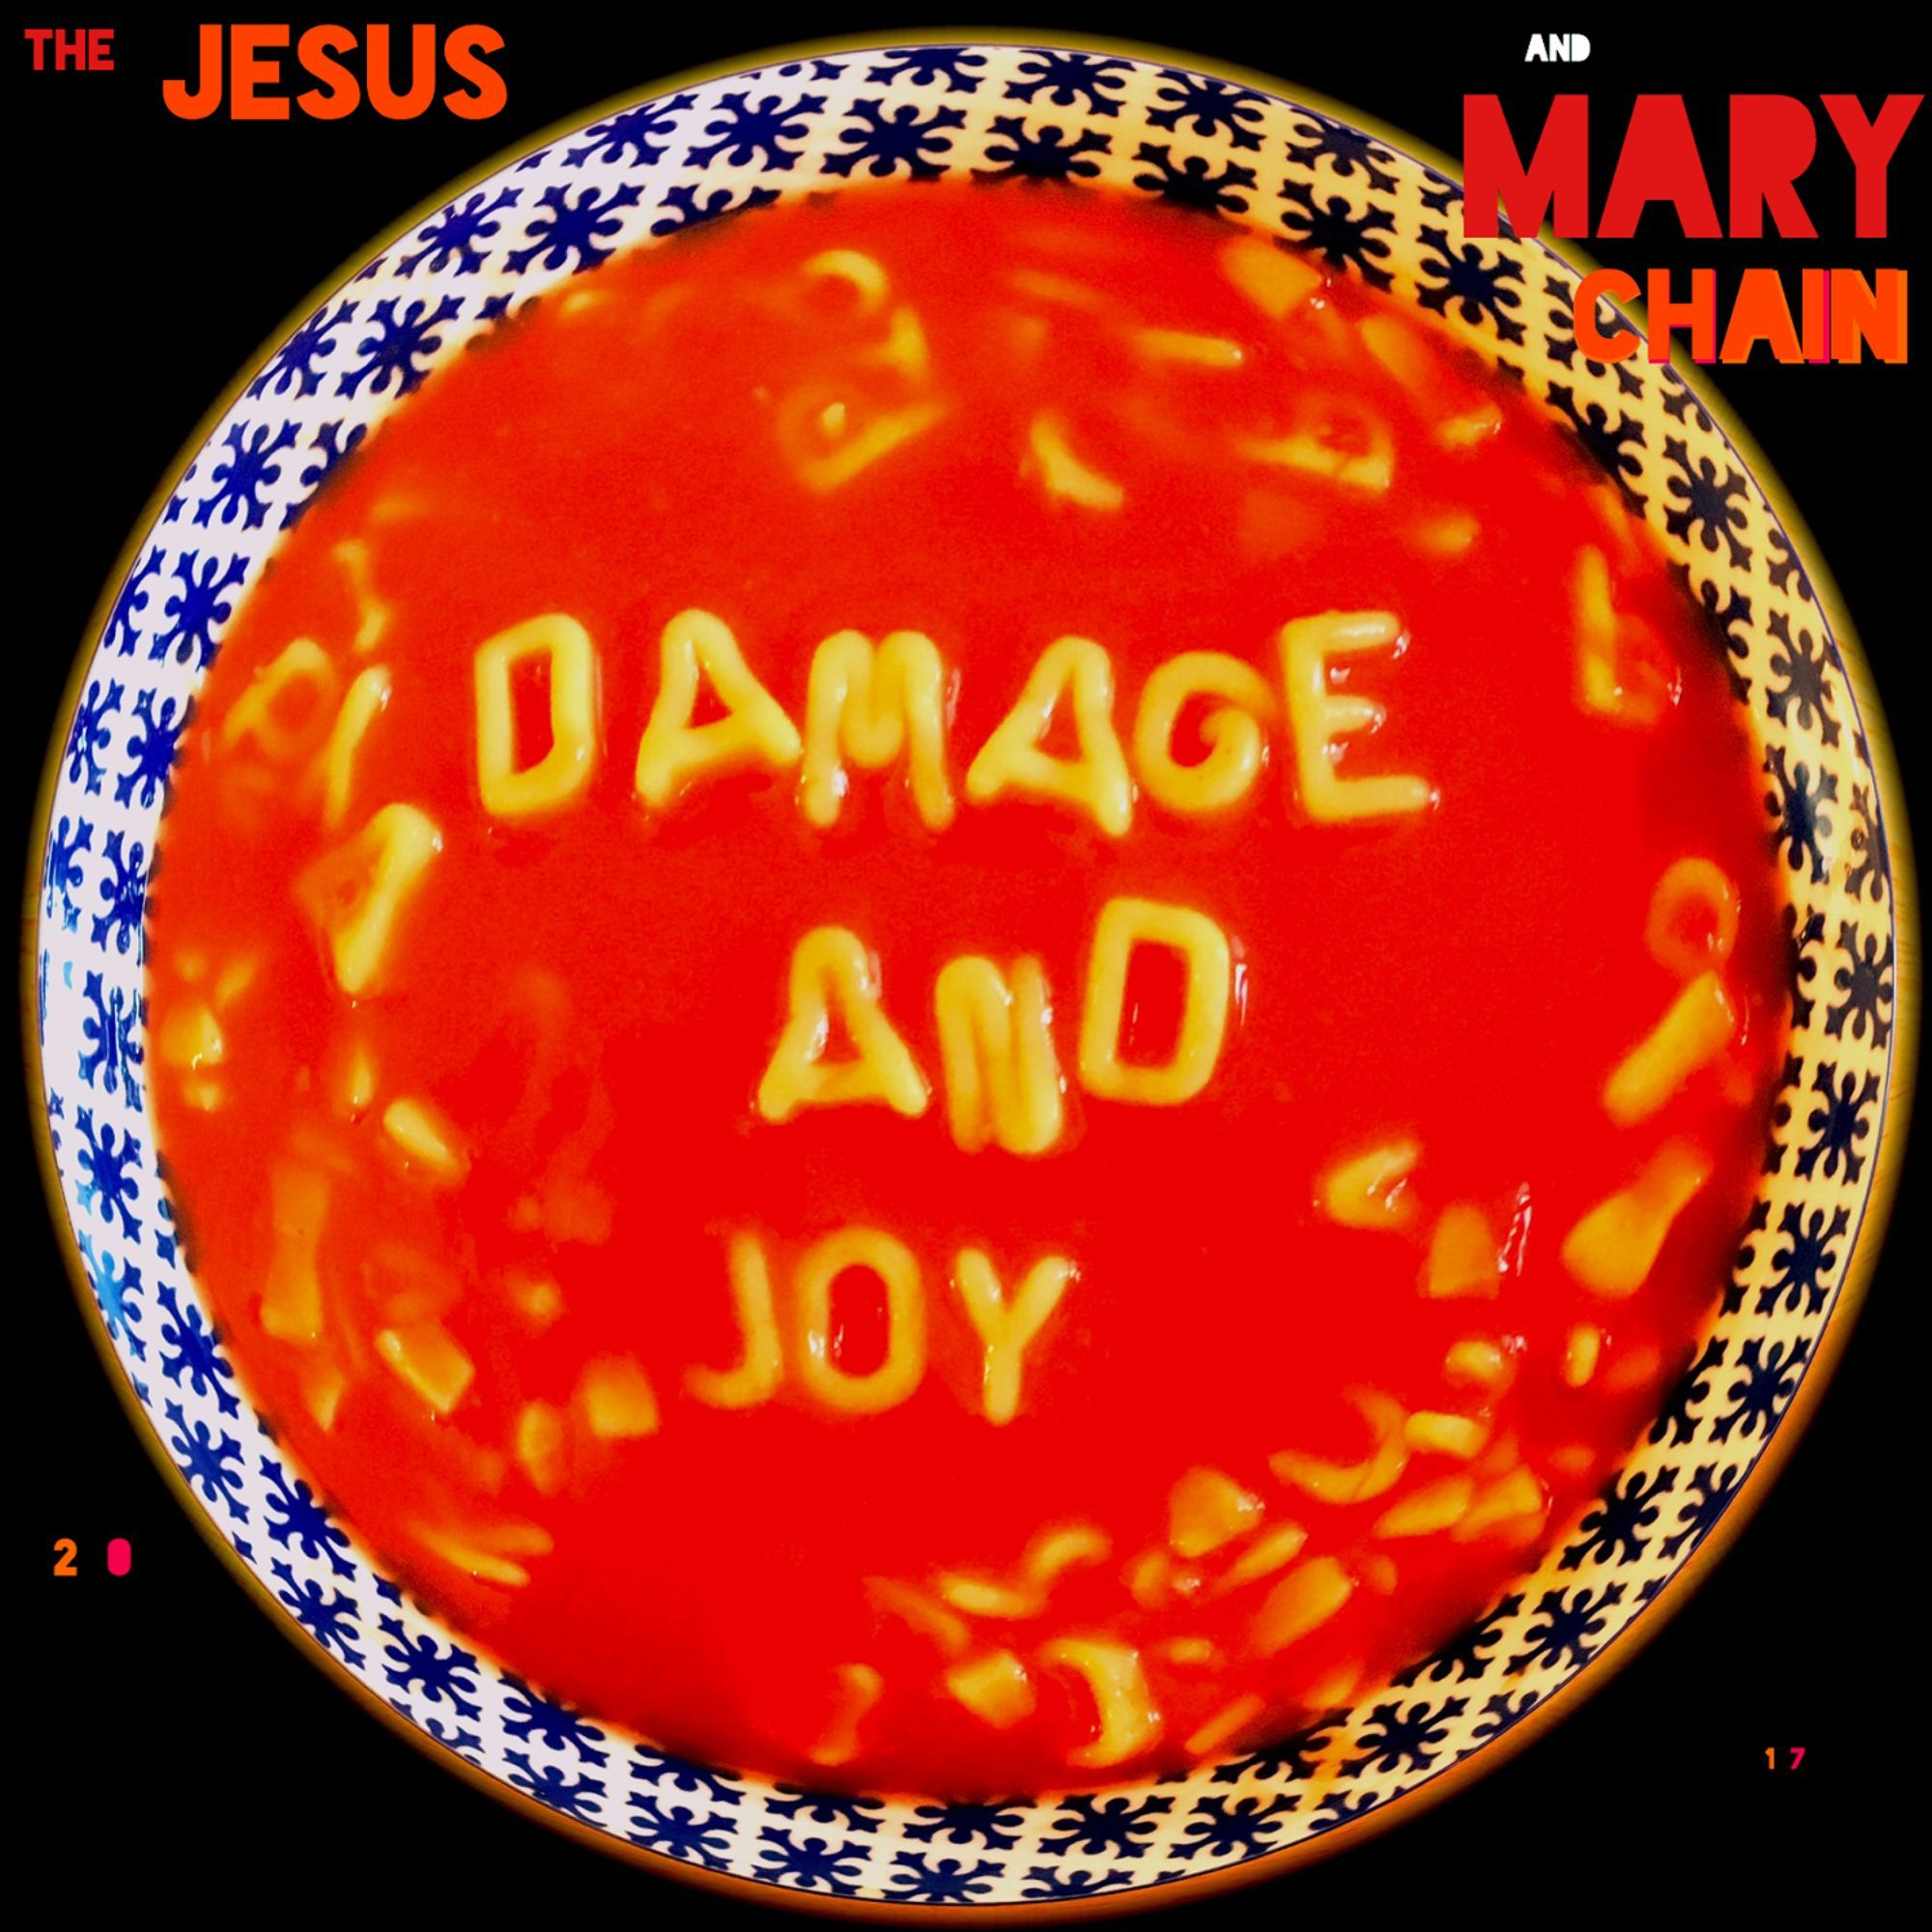 The Jesus and Mary Chain - Damage And Joy album cover